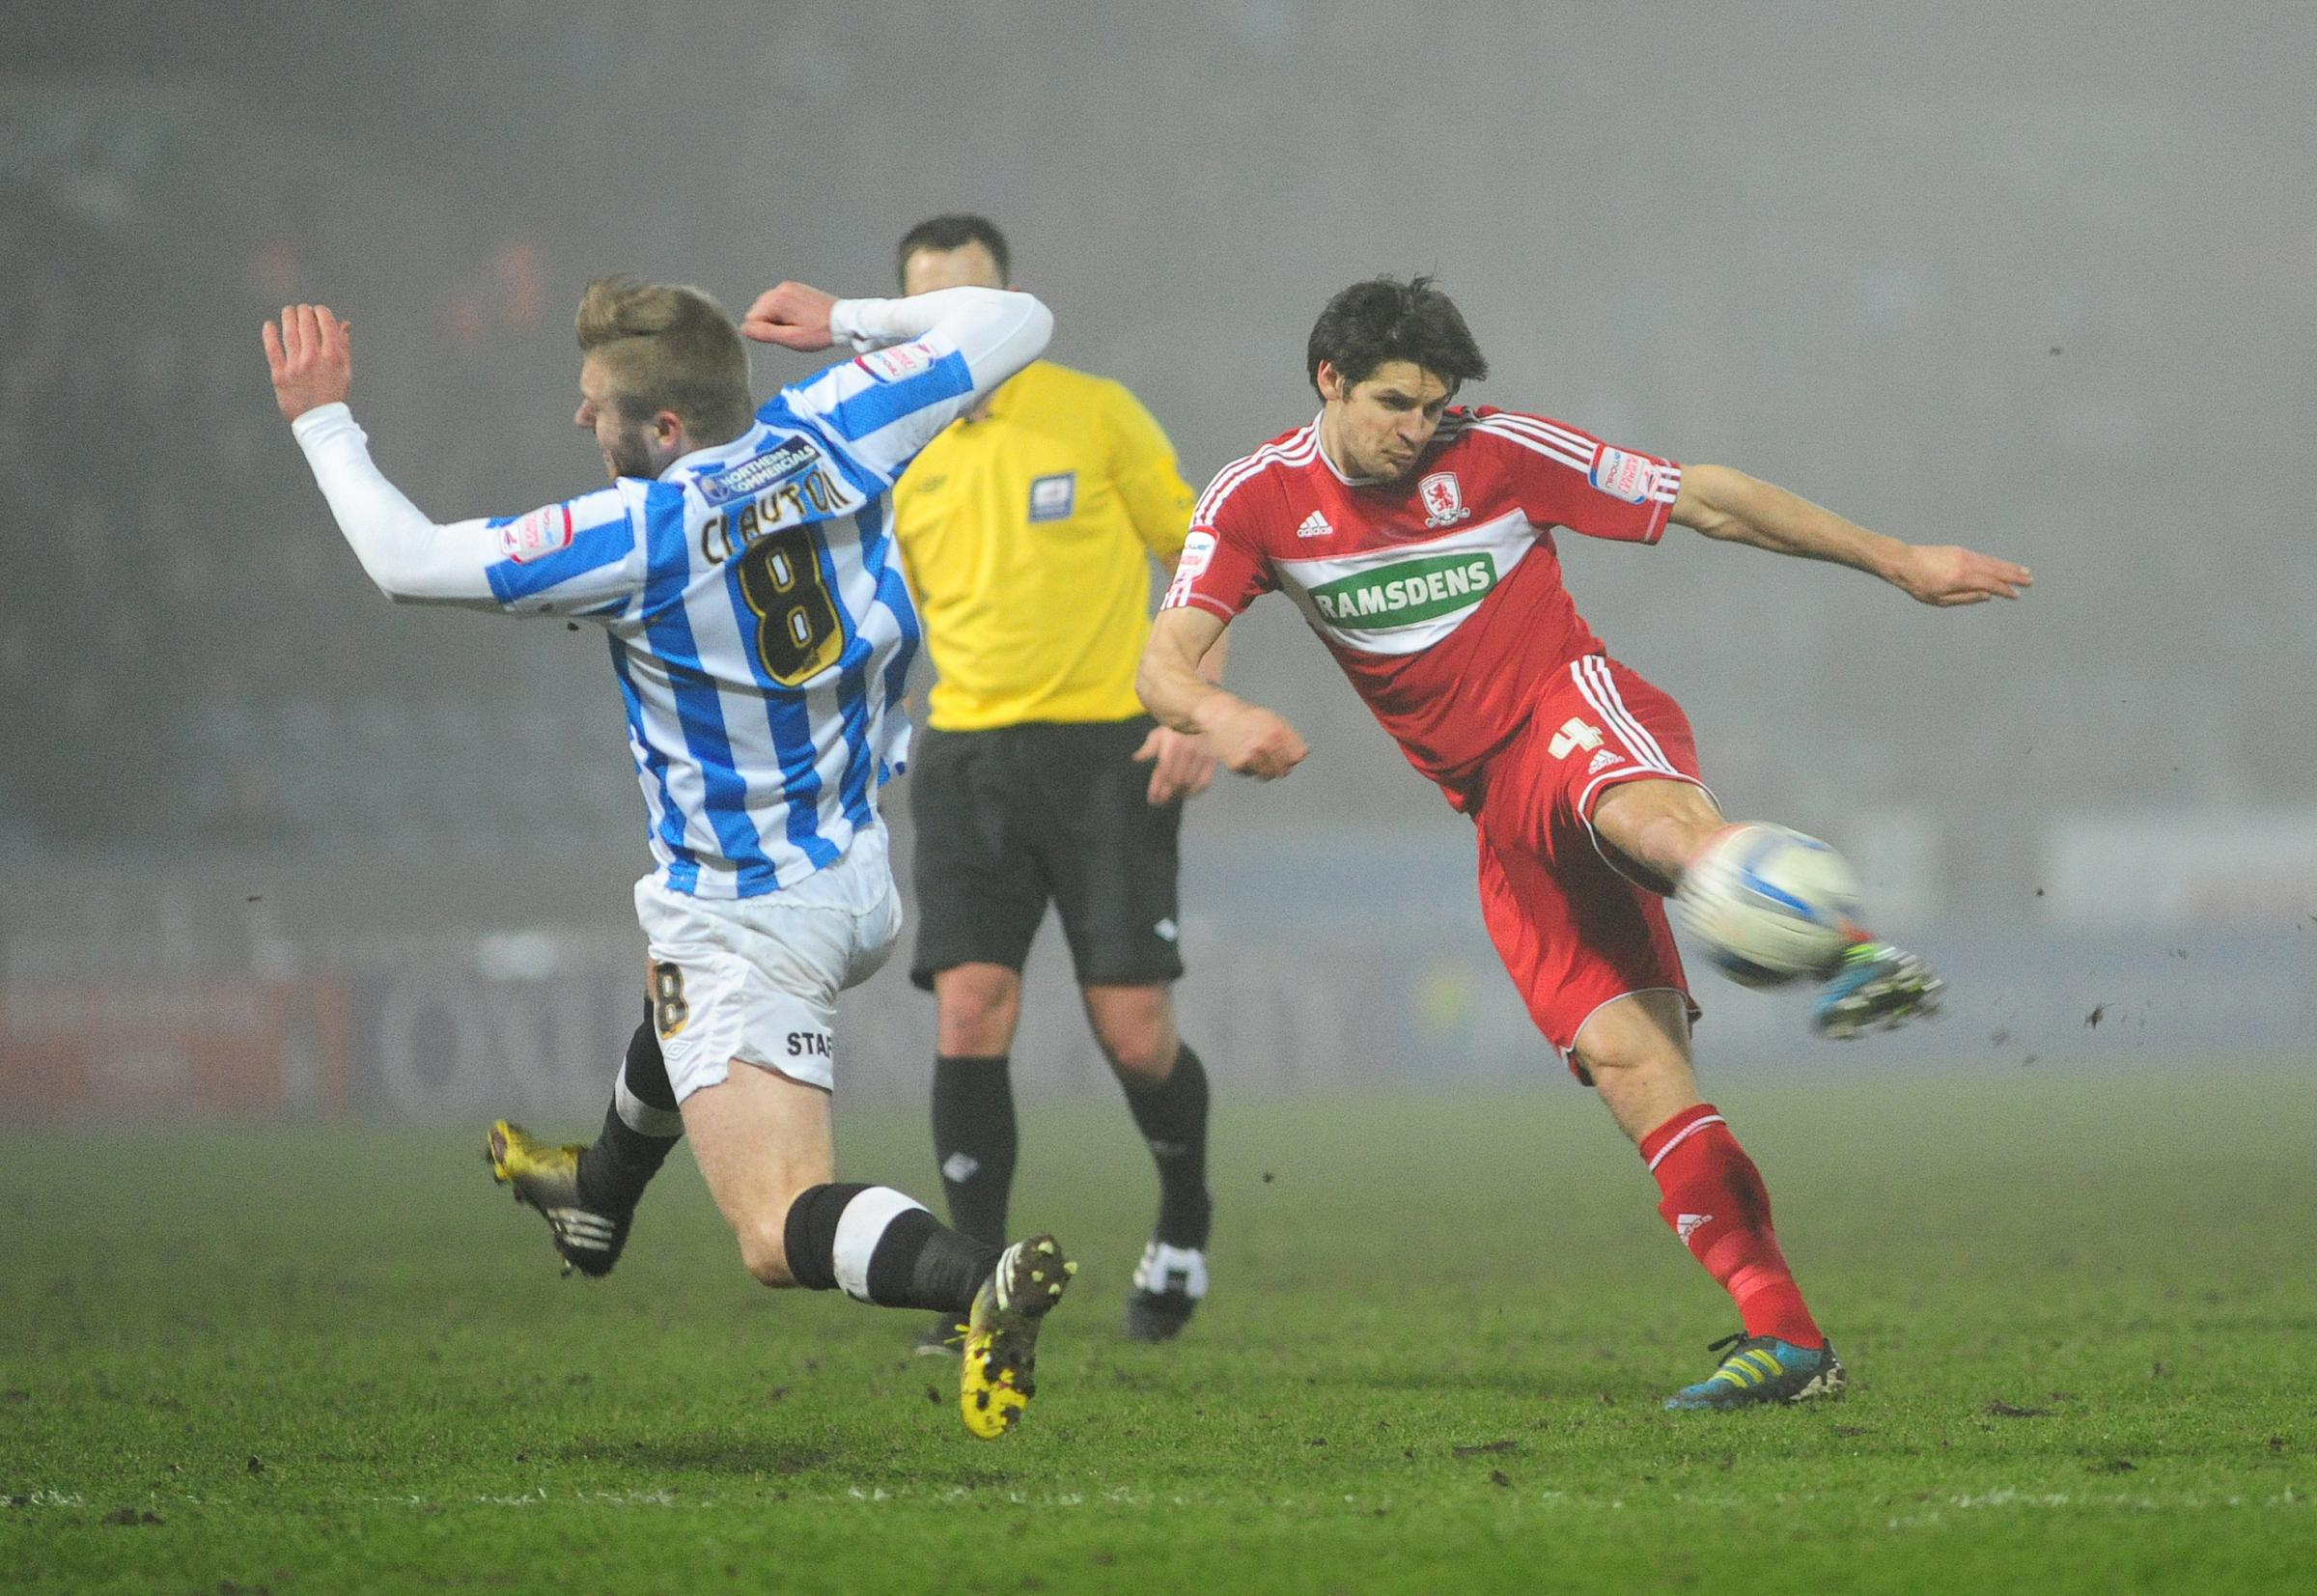 Huddersfield Town's Adam Clayton tries to block a shot from Middlesbrough's George Friend in a Championship match at the John Smith's Stadium last season